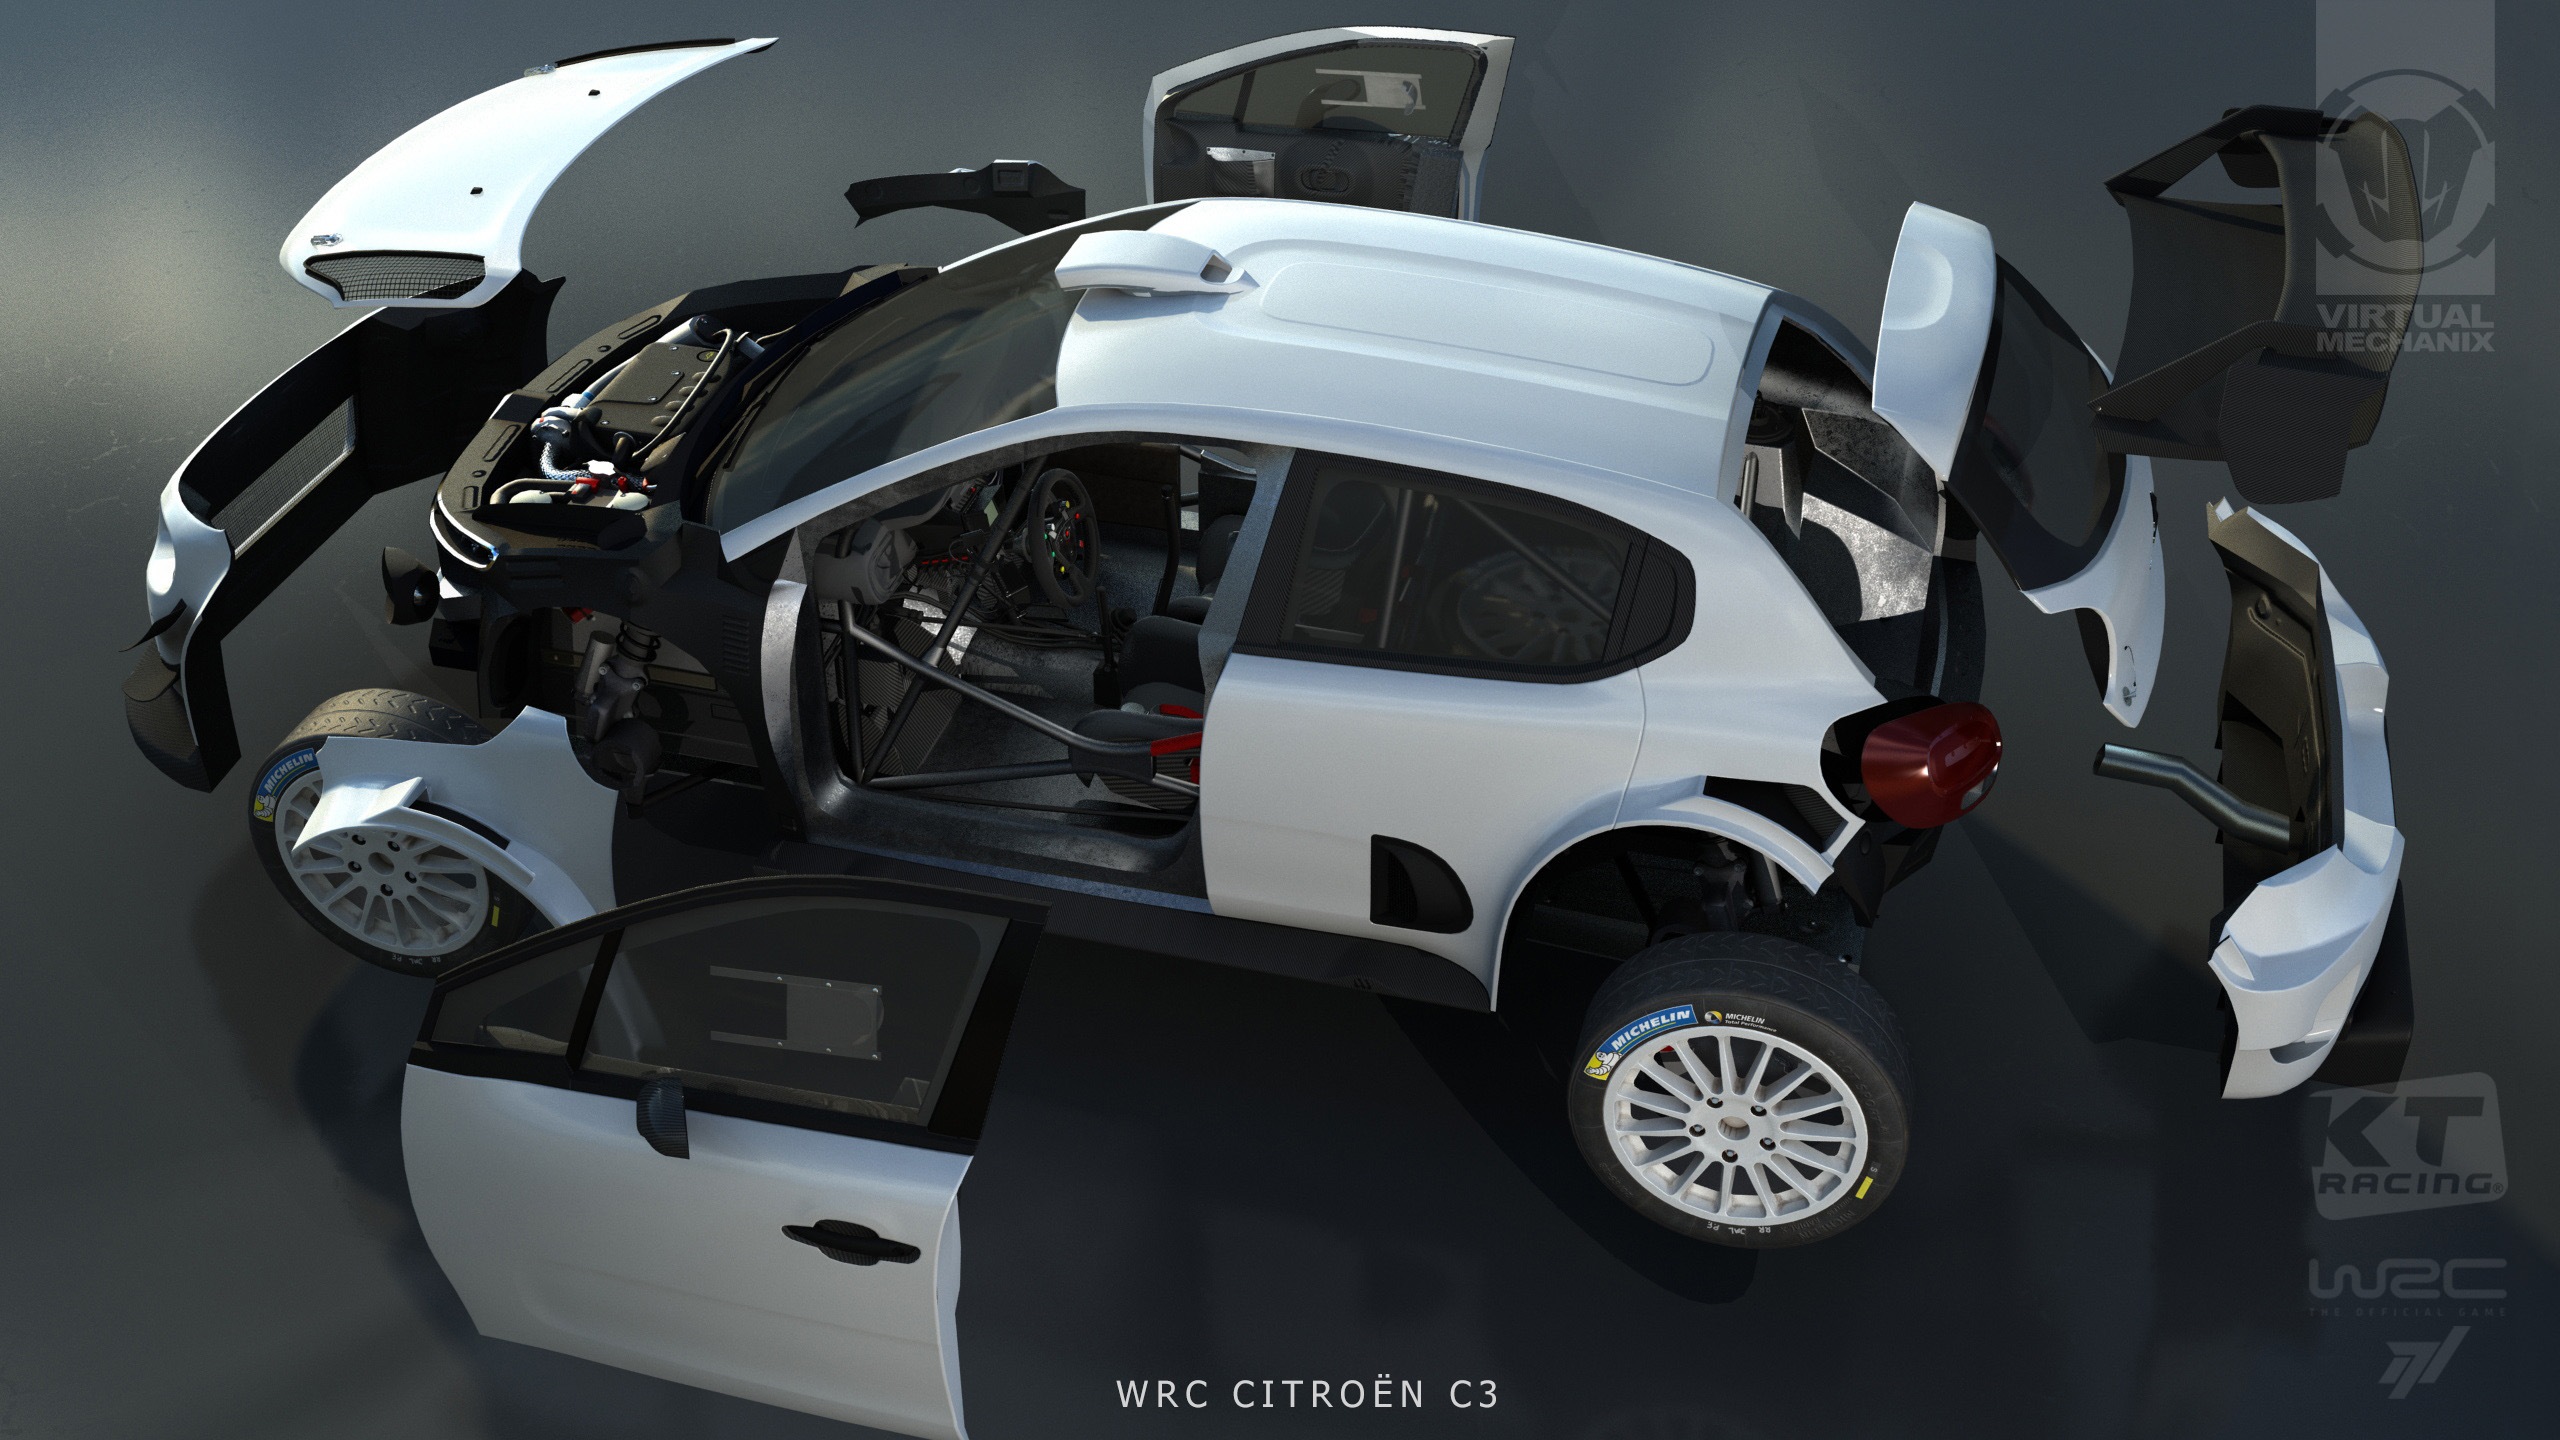 WRC7 Citroen C3 Exploded View